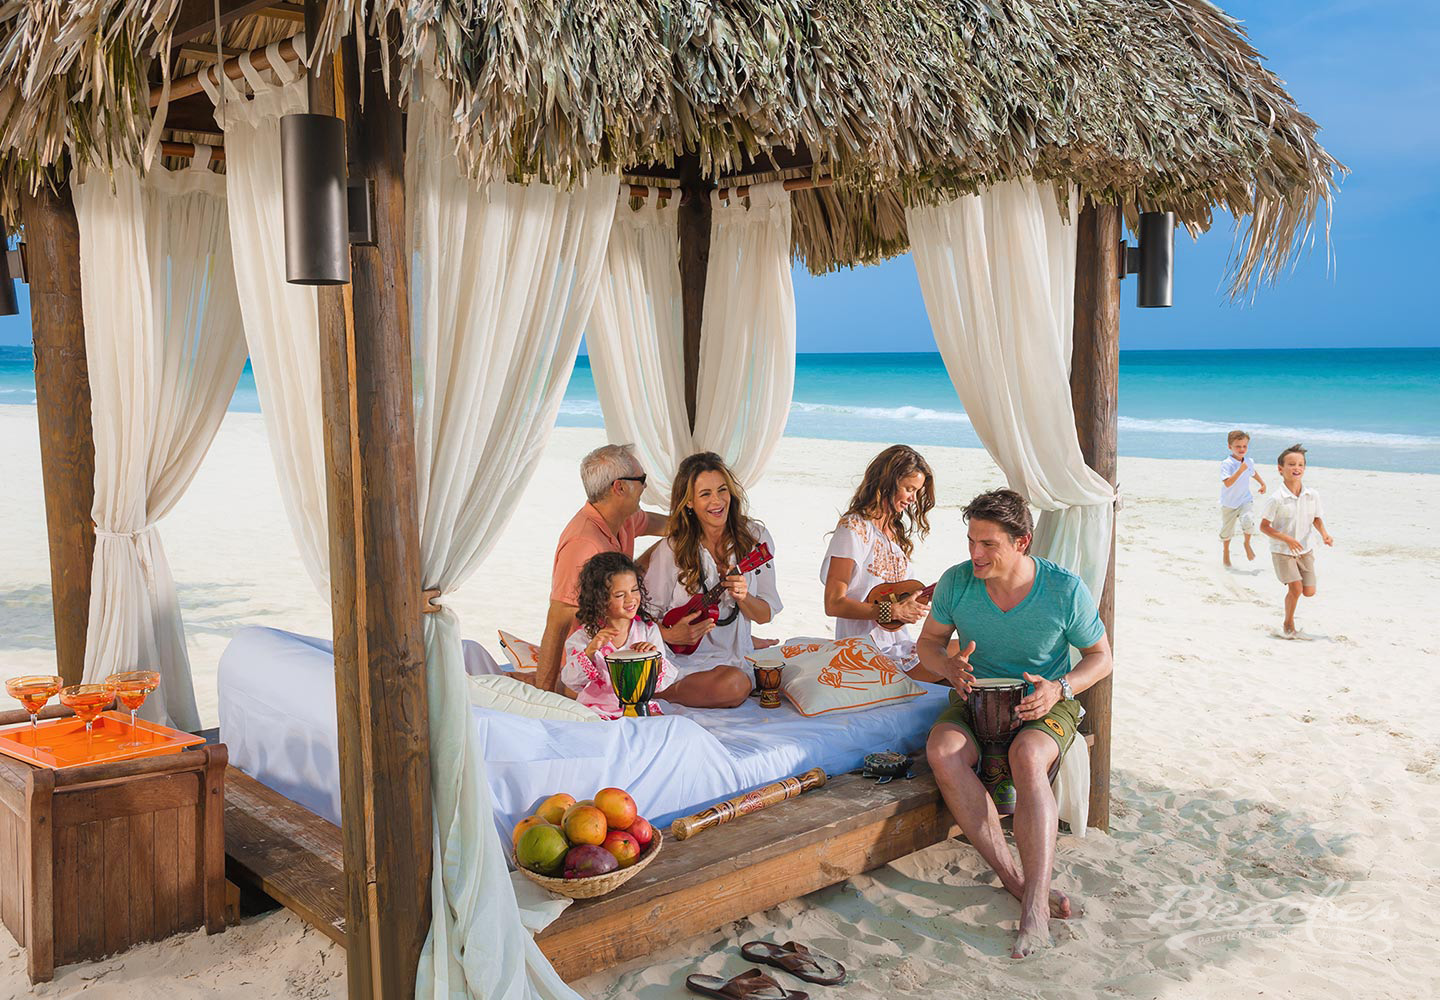 Travel Agency All-Inclusive Resort Beaches Negril 020